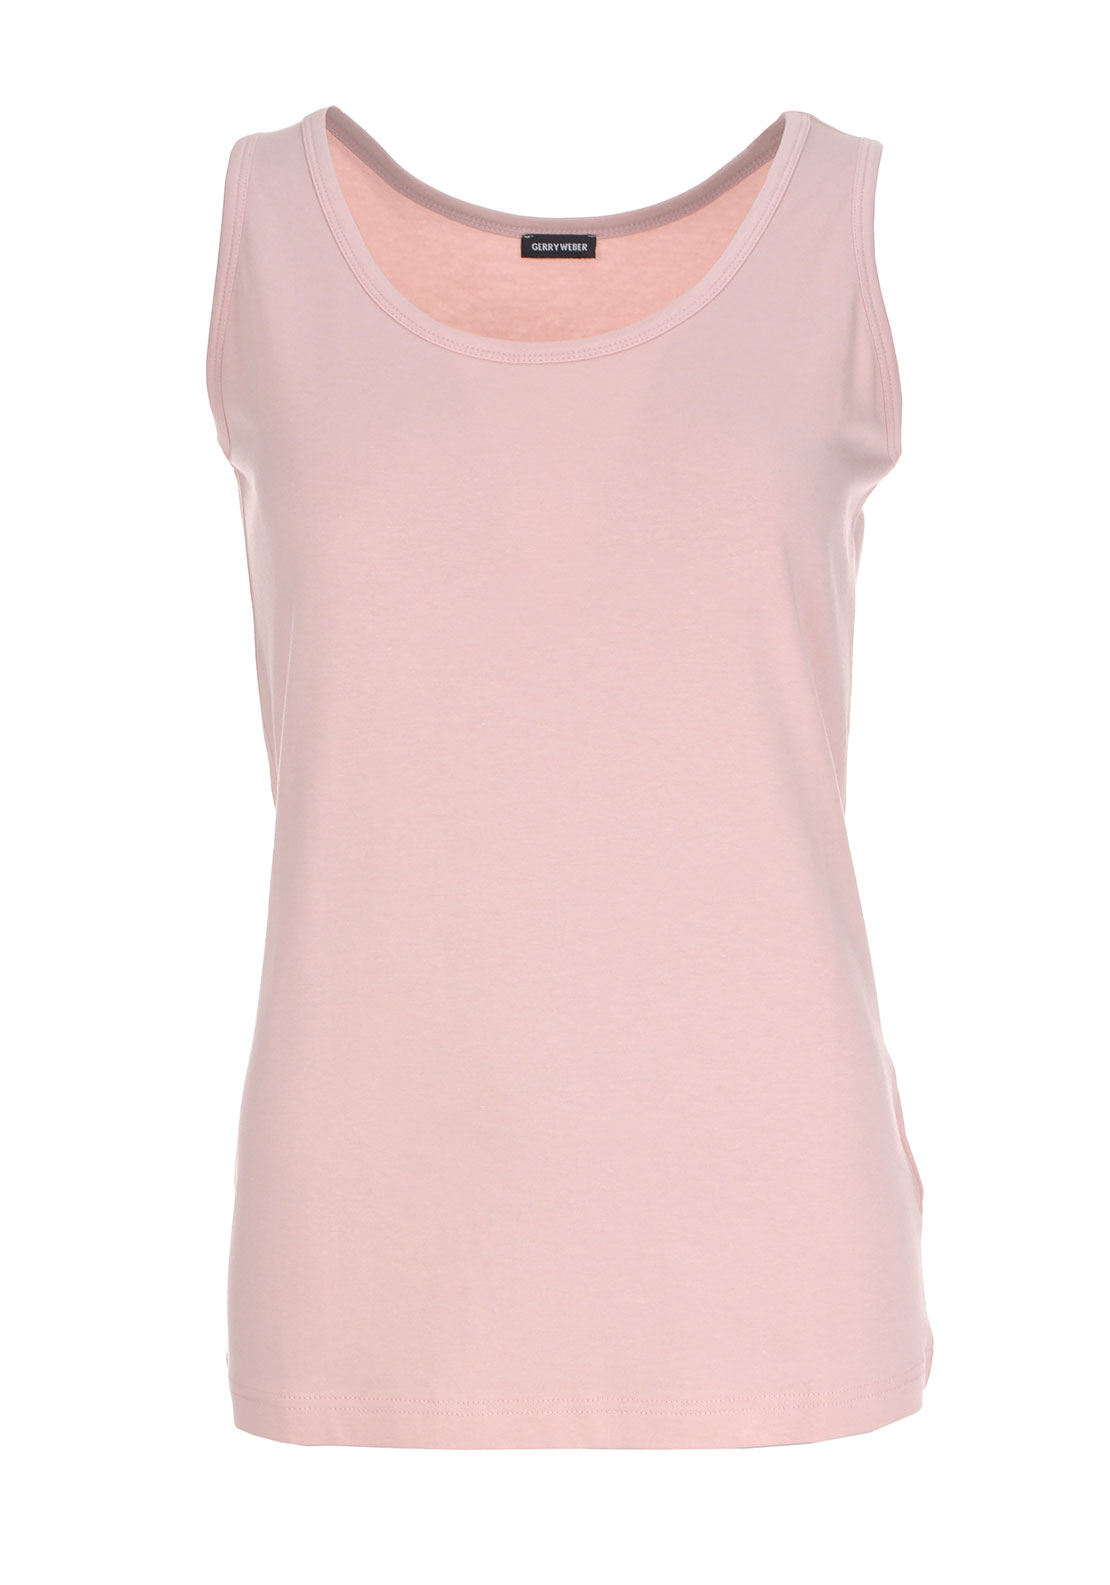 Gerry Weber Sleeveless Tank Top, Pink